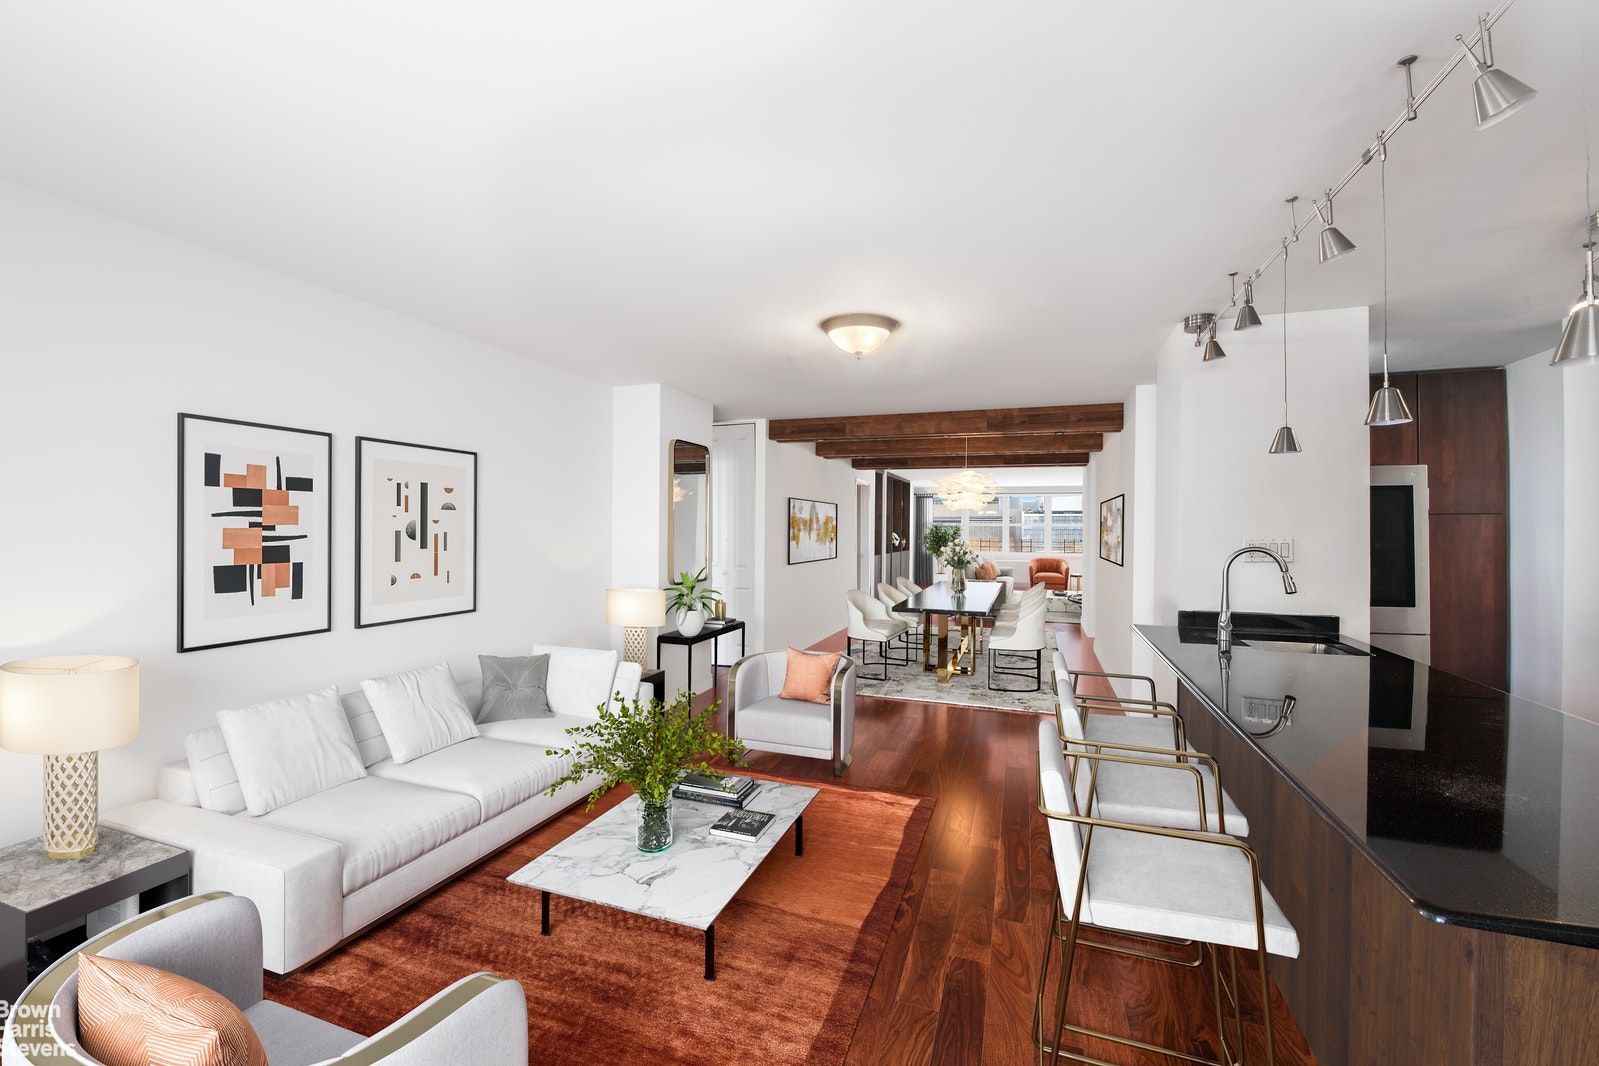 251 East 32nd Street 9bc, Murray Hill Kips Bay, NYC, 10016, $1,599,000, Property For Sale, Halstead Real Estate, Photo 2